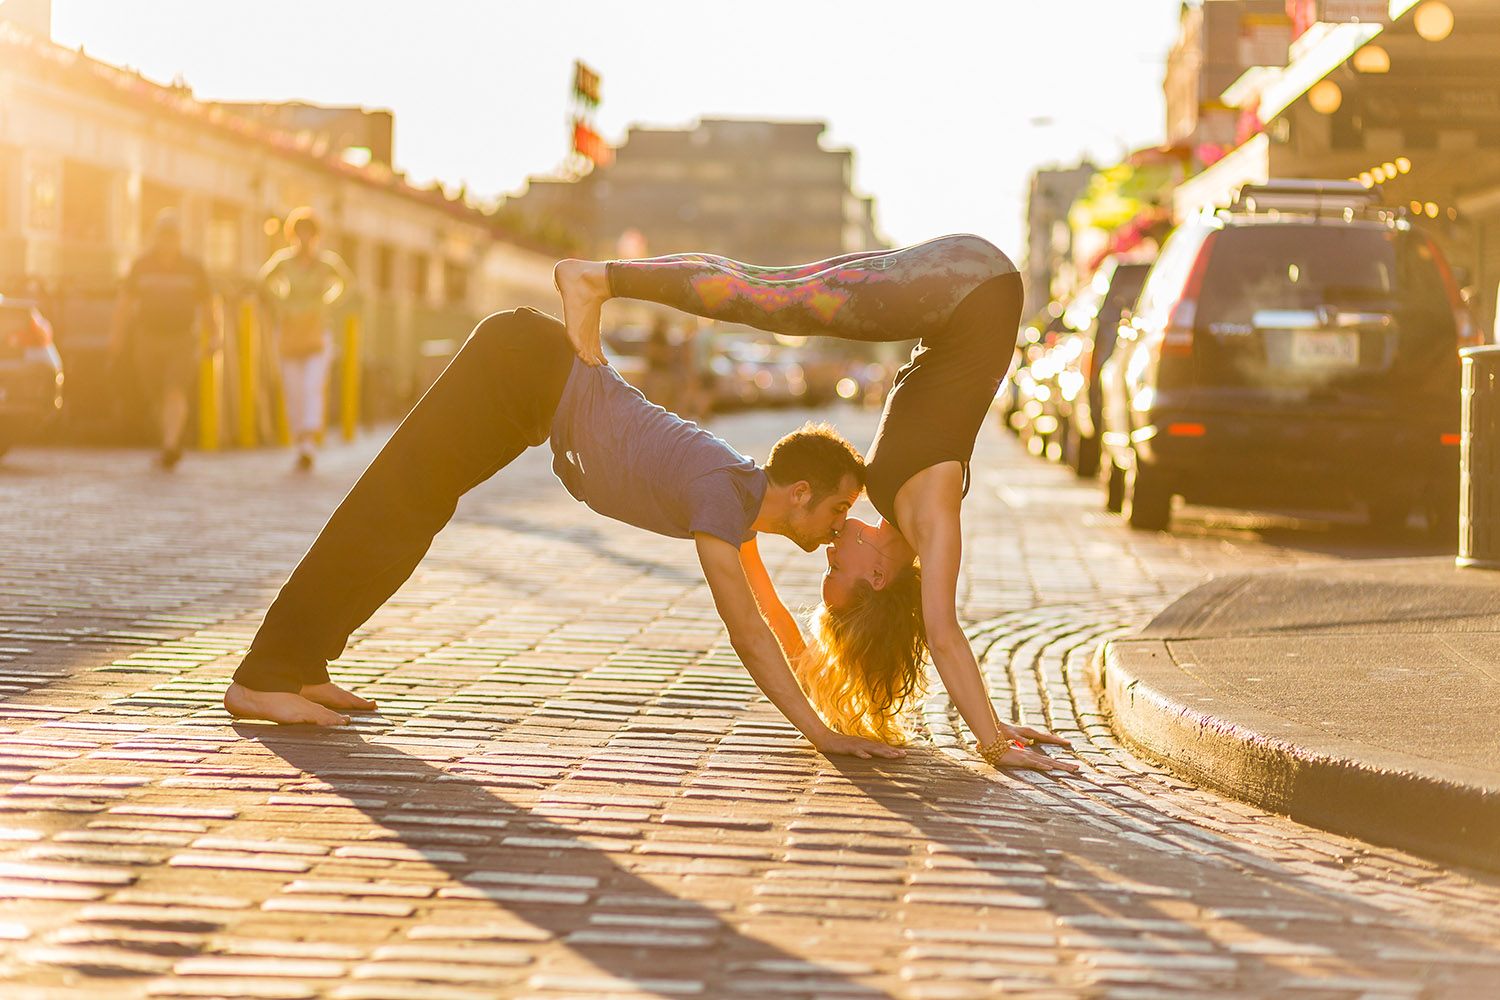 Lifestyle: Noé Khalfa and Karina Brossman practicing partners yoga at Pike Place Market in late summer light, Seattle, Washington